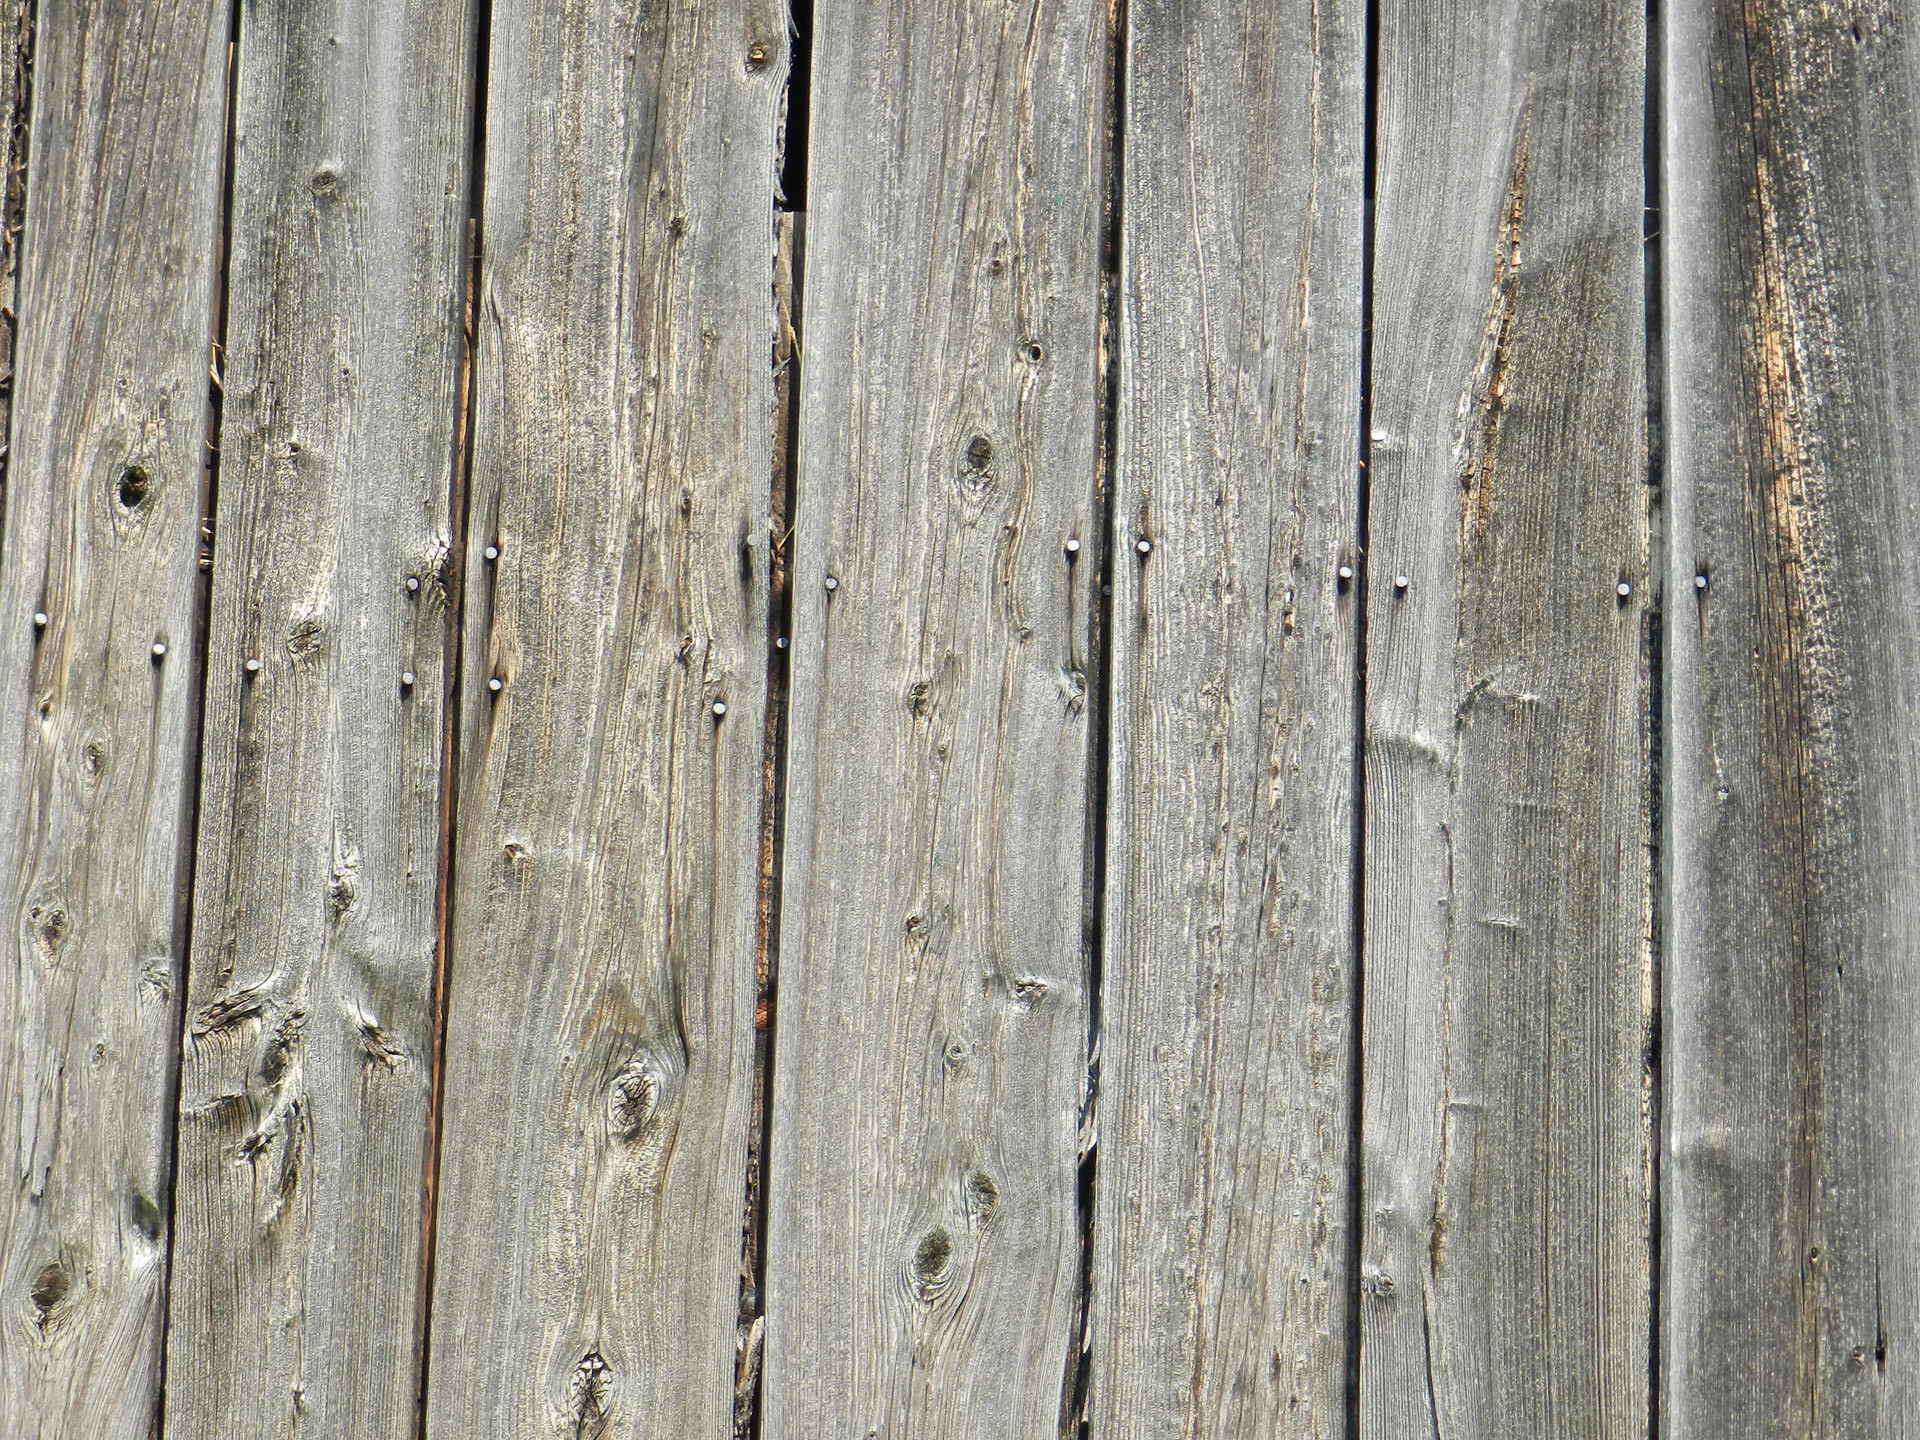 Barn wood desktop wallpaper images